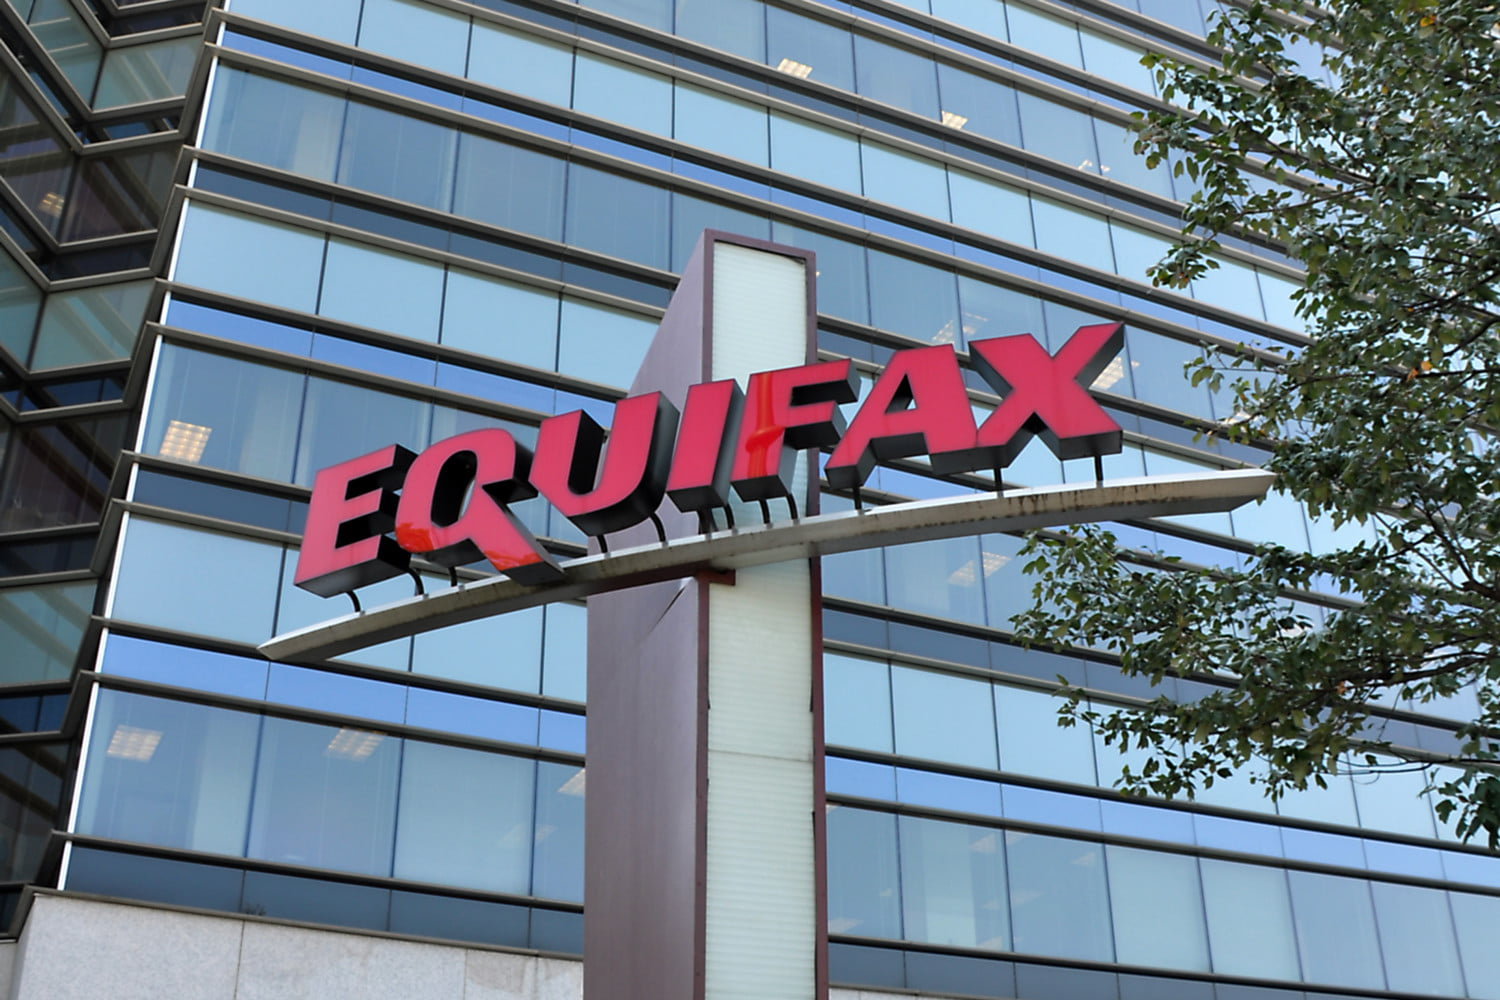 Lawsuit alleges Equifax's stupid password made it super easy to steal your data